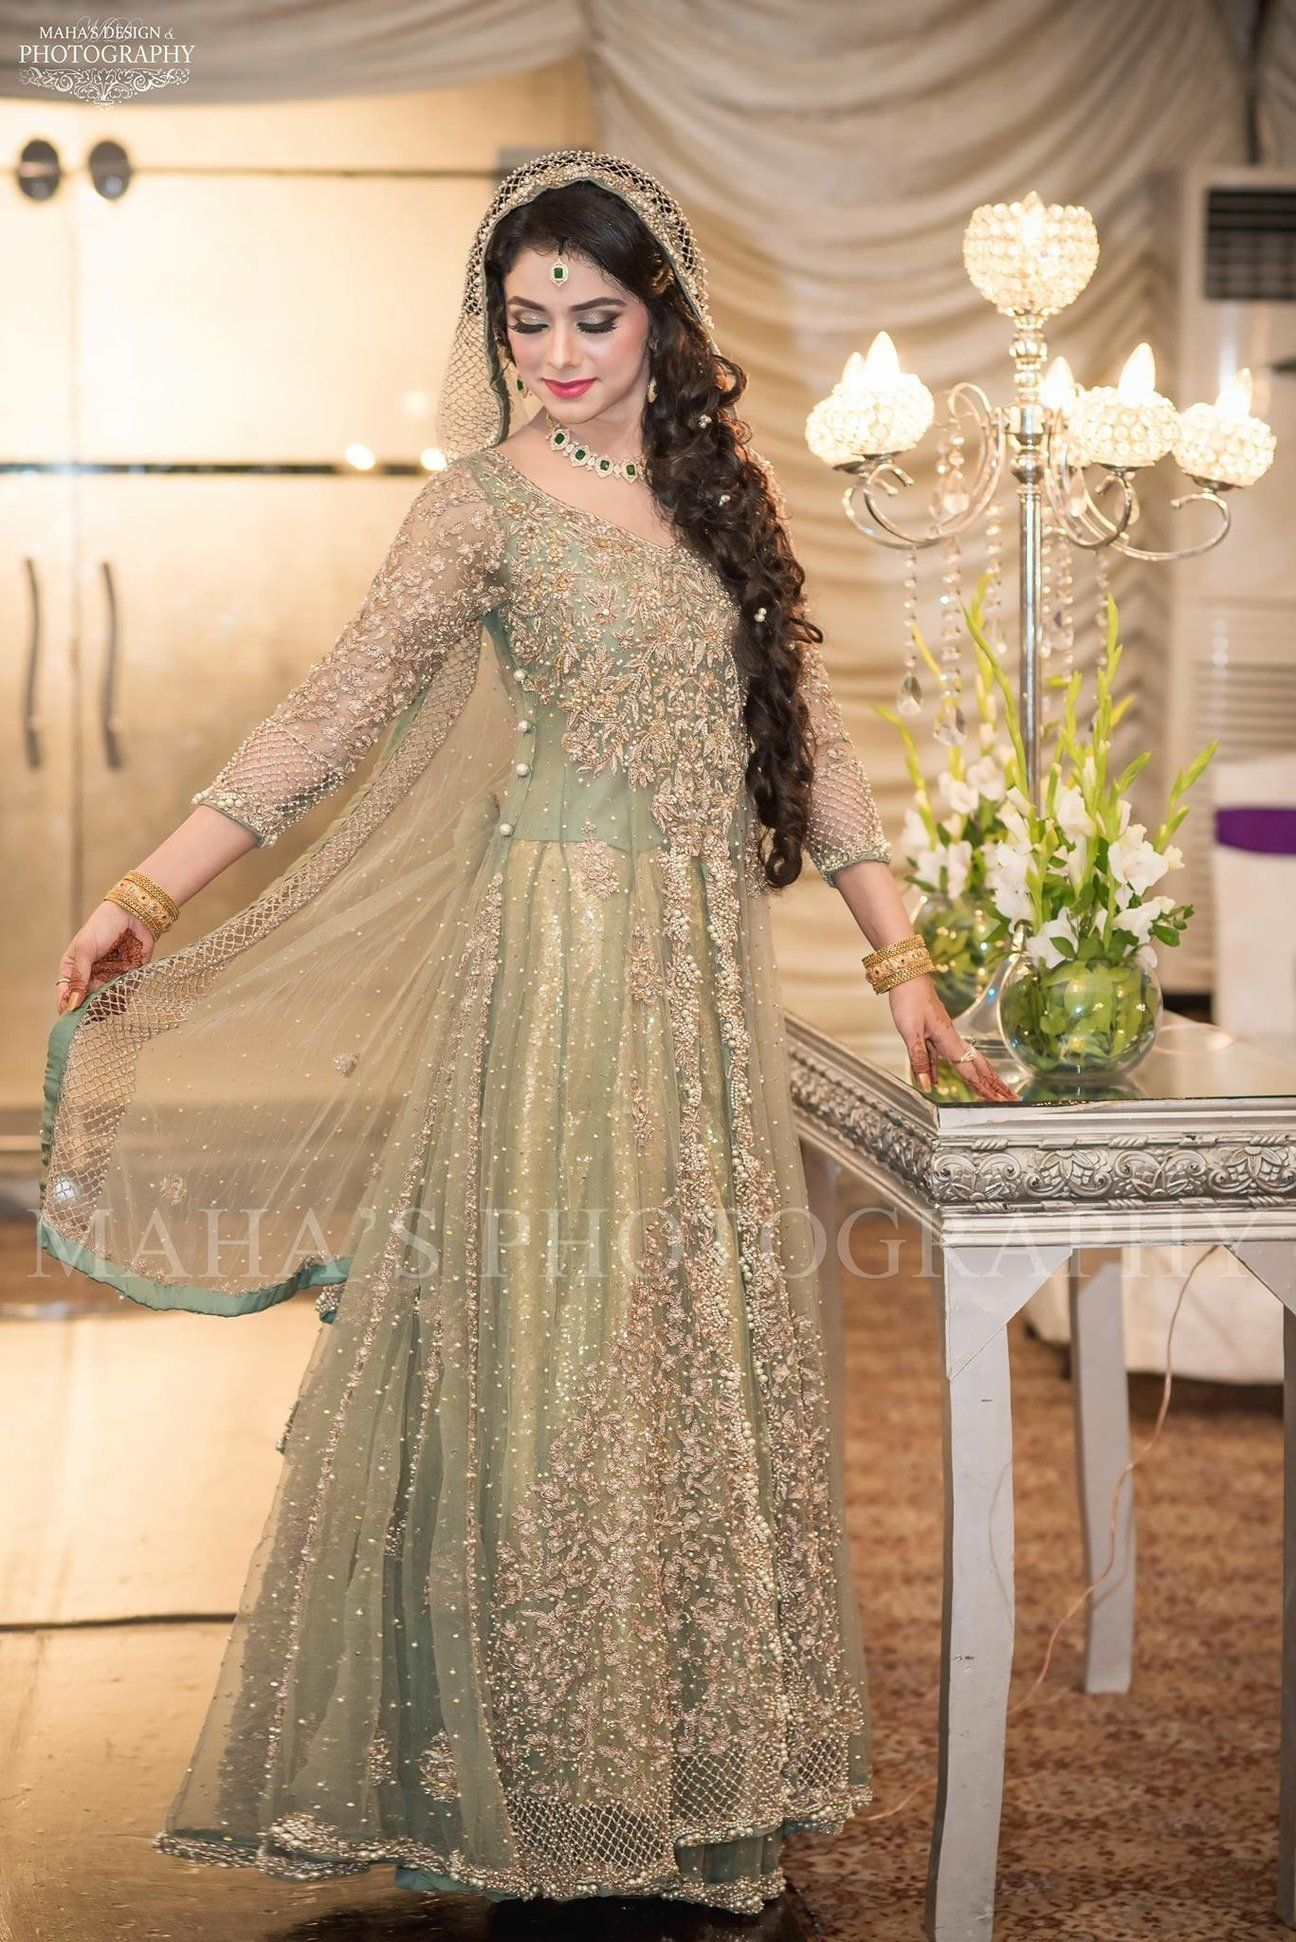 Beutifull Bridal Maxi In Mint Green Color With Dull Gold And Silver Color Model W 1193 Indian Wedding Dress Modern Pakistani Bridal Dresses Bridal Maxi Dress,White Lace Wedding Dress Sparkle